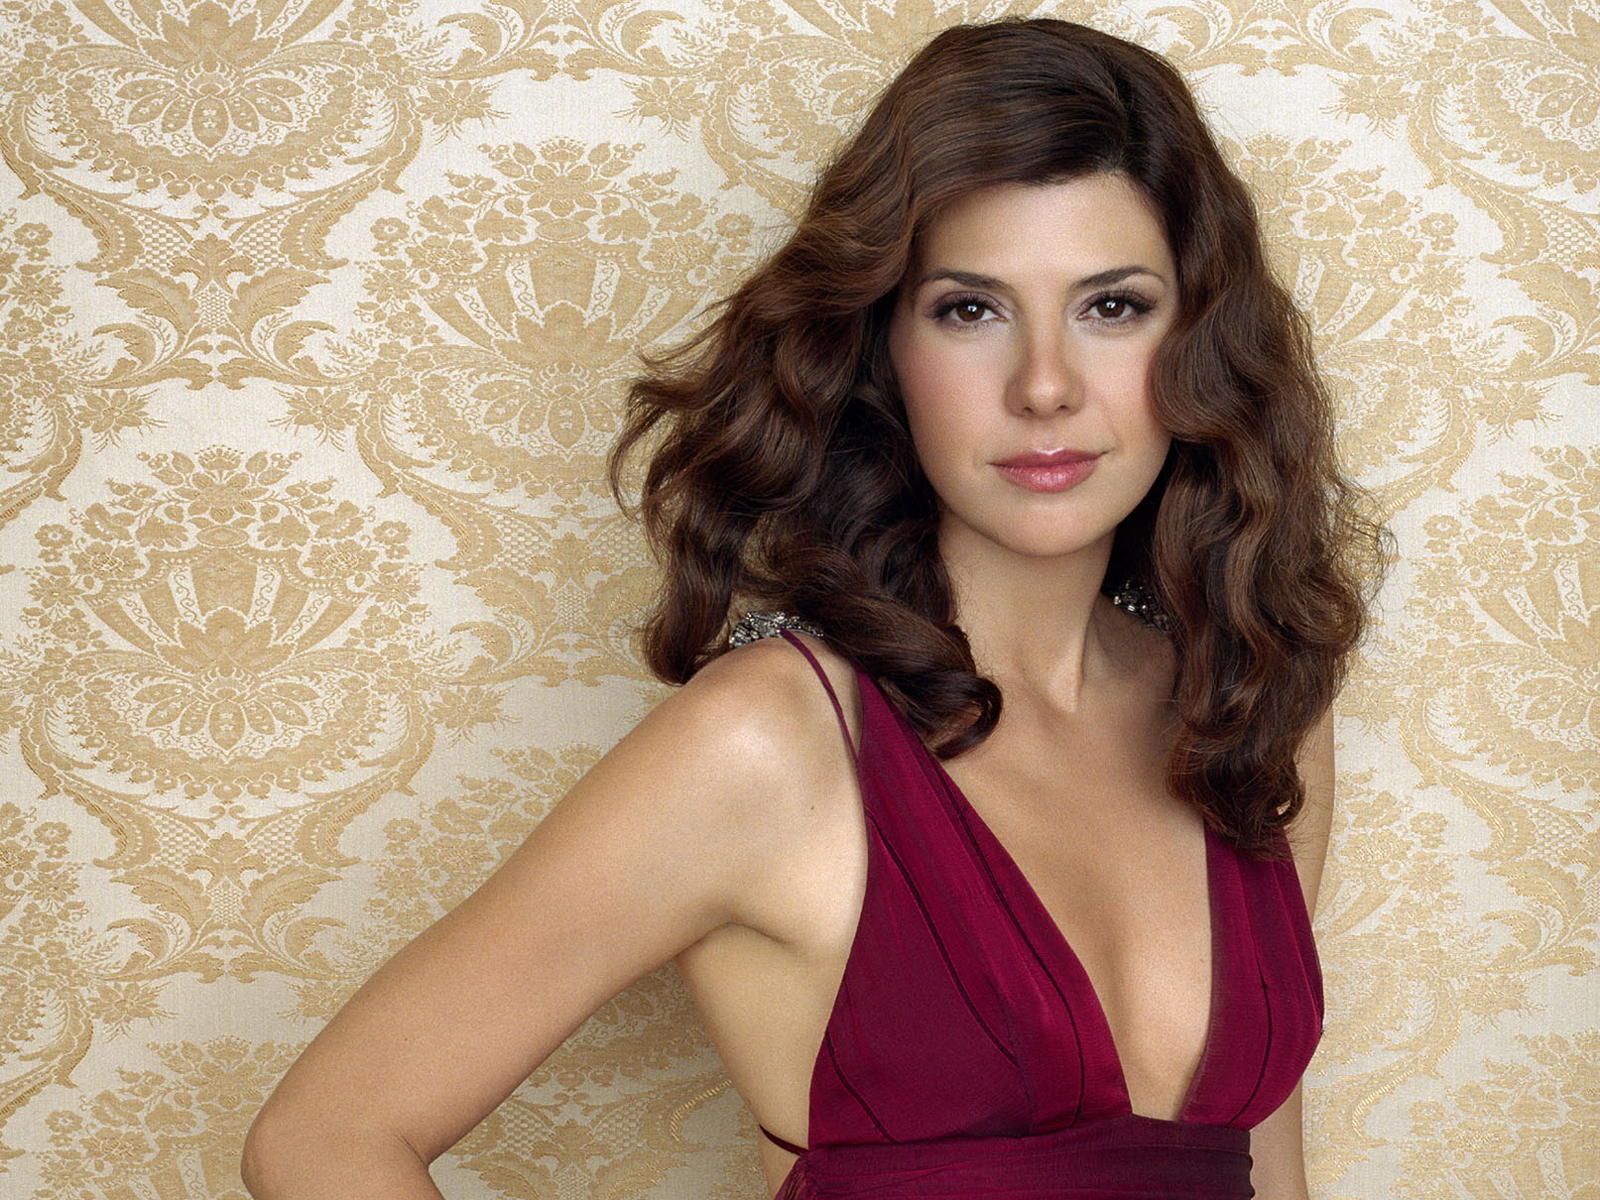 Hot Marisa Tomei nudes (24 photo), Topless, Leaked, Boobs, cleavage 2018